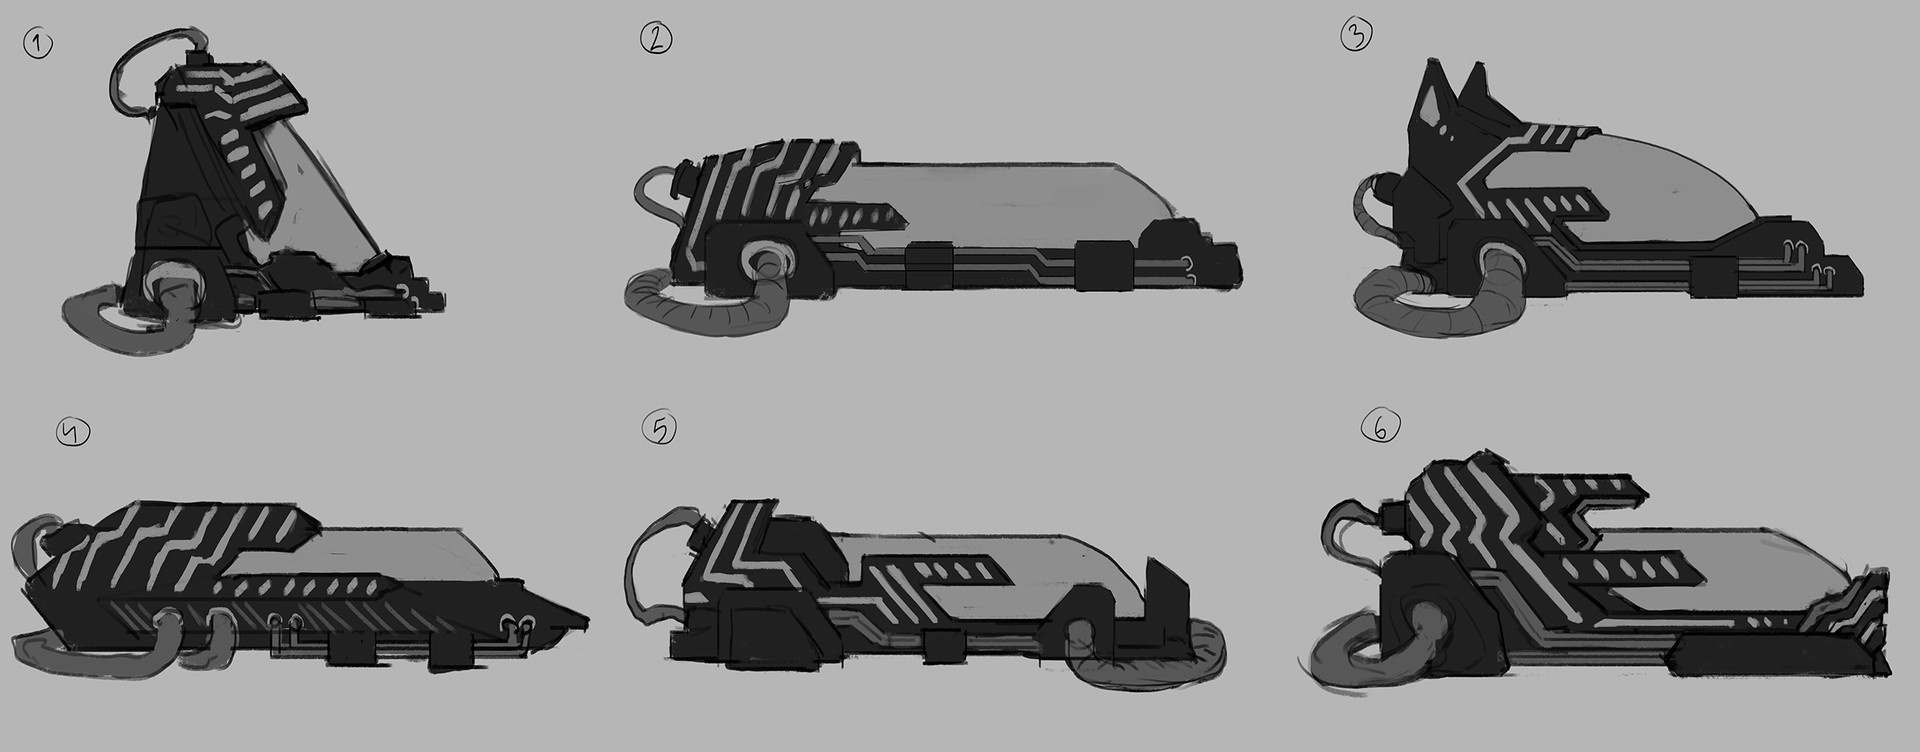 "Thumbnails. My task here was to keep a fairly similar silhouette but still explore different aesthetic approaches. The deisgn needed to easily read as a lifepod/sarcophagus for when the player respawn to feel like they ""wake up"" from it."